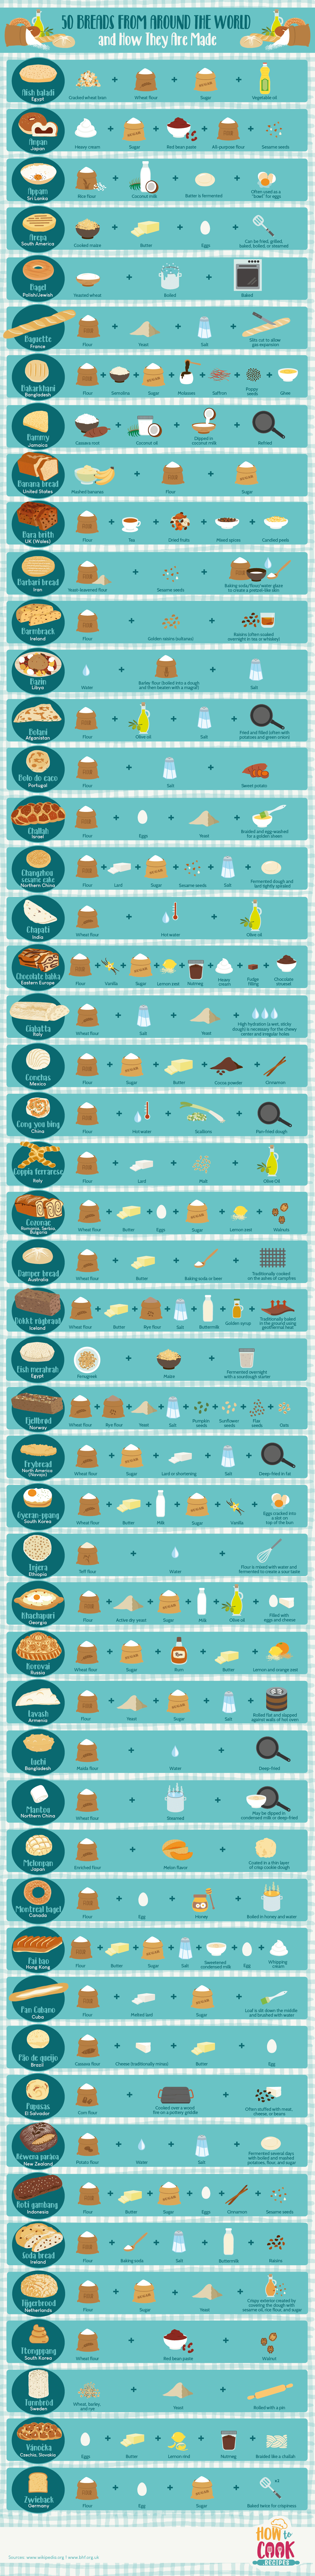 How Different Breads From Around the World Are Made